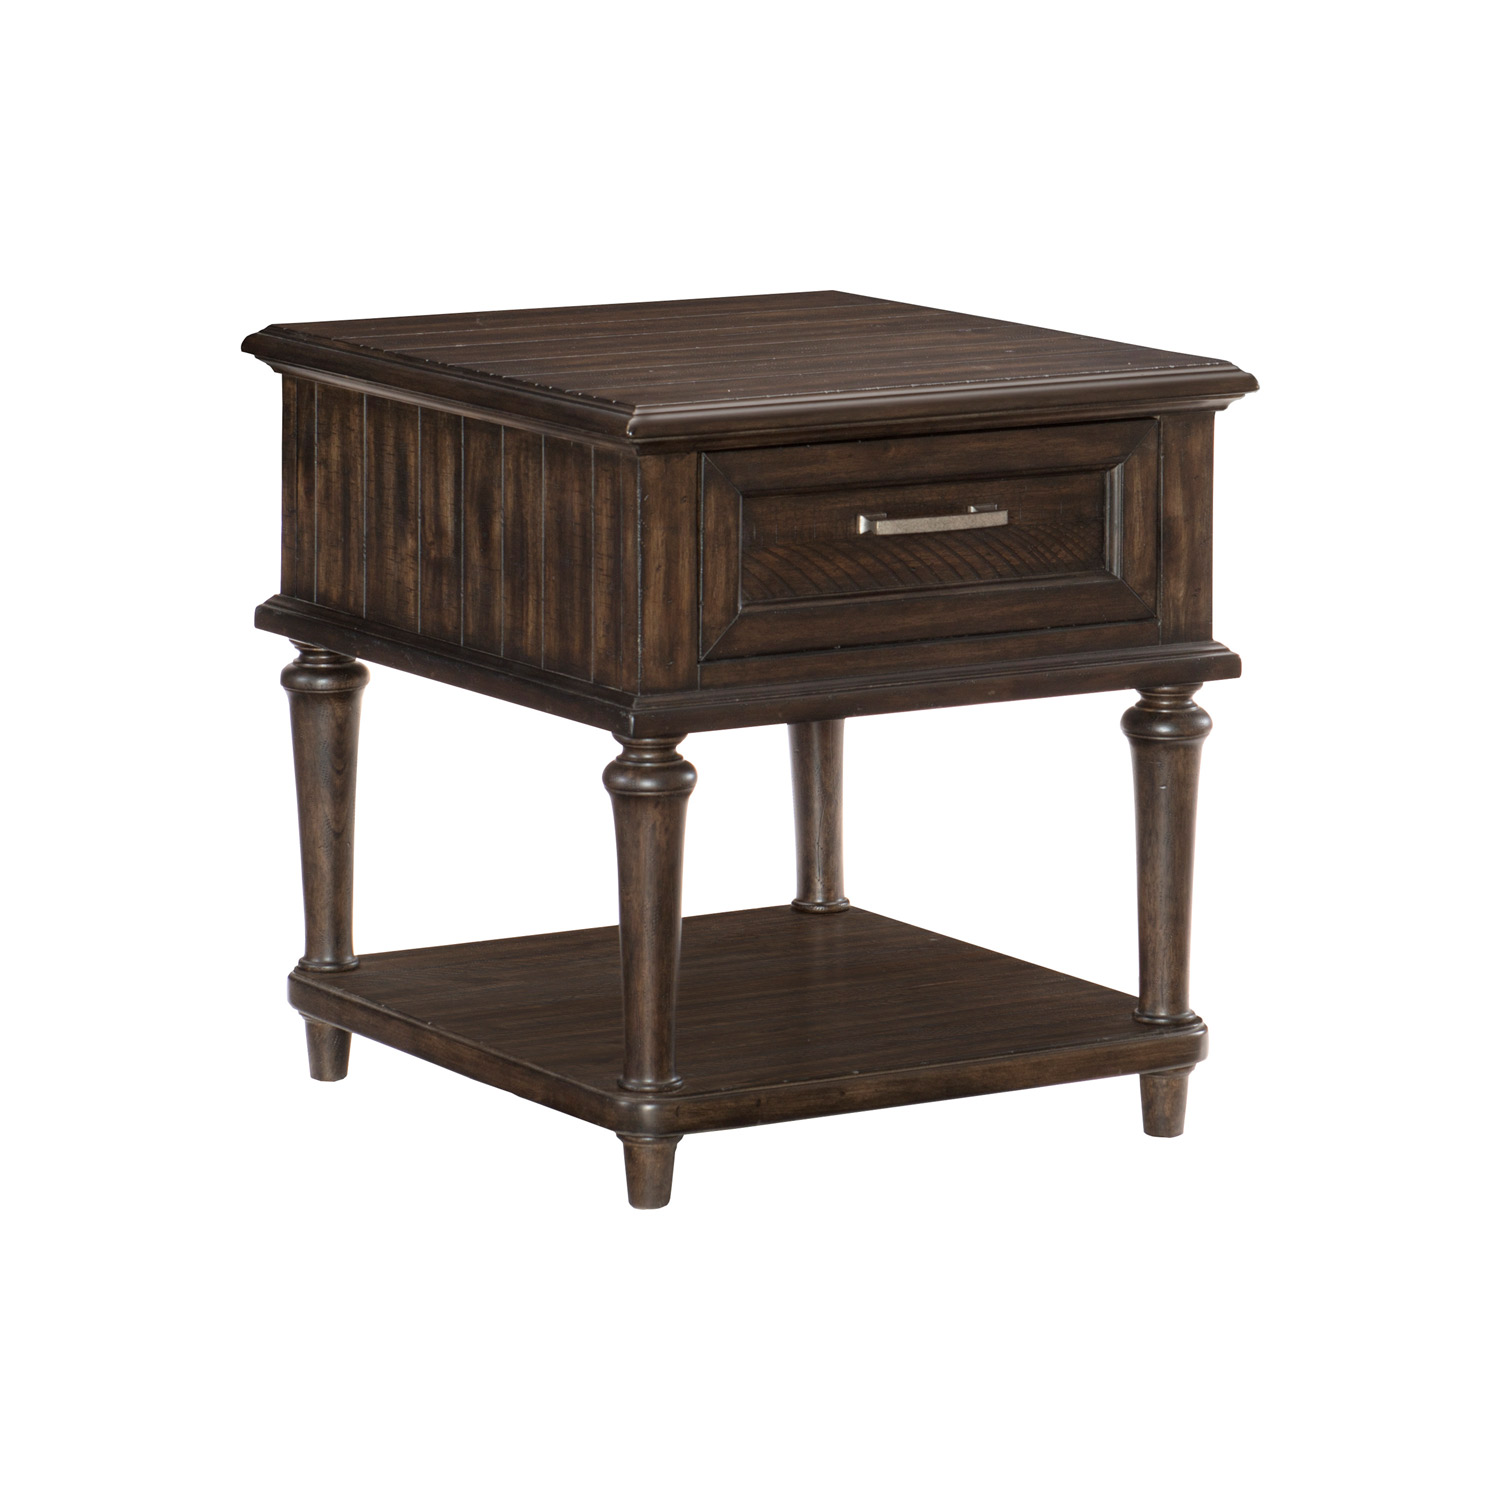 Homelegance Cardano End Table with Functional Drawer - Driftwood Charcoal